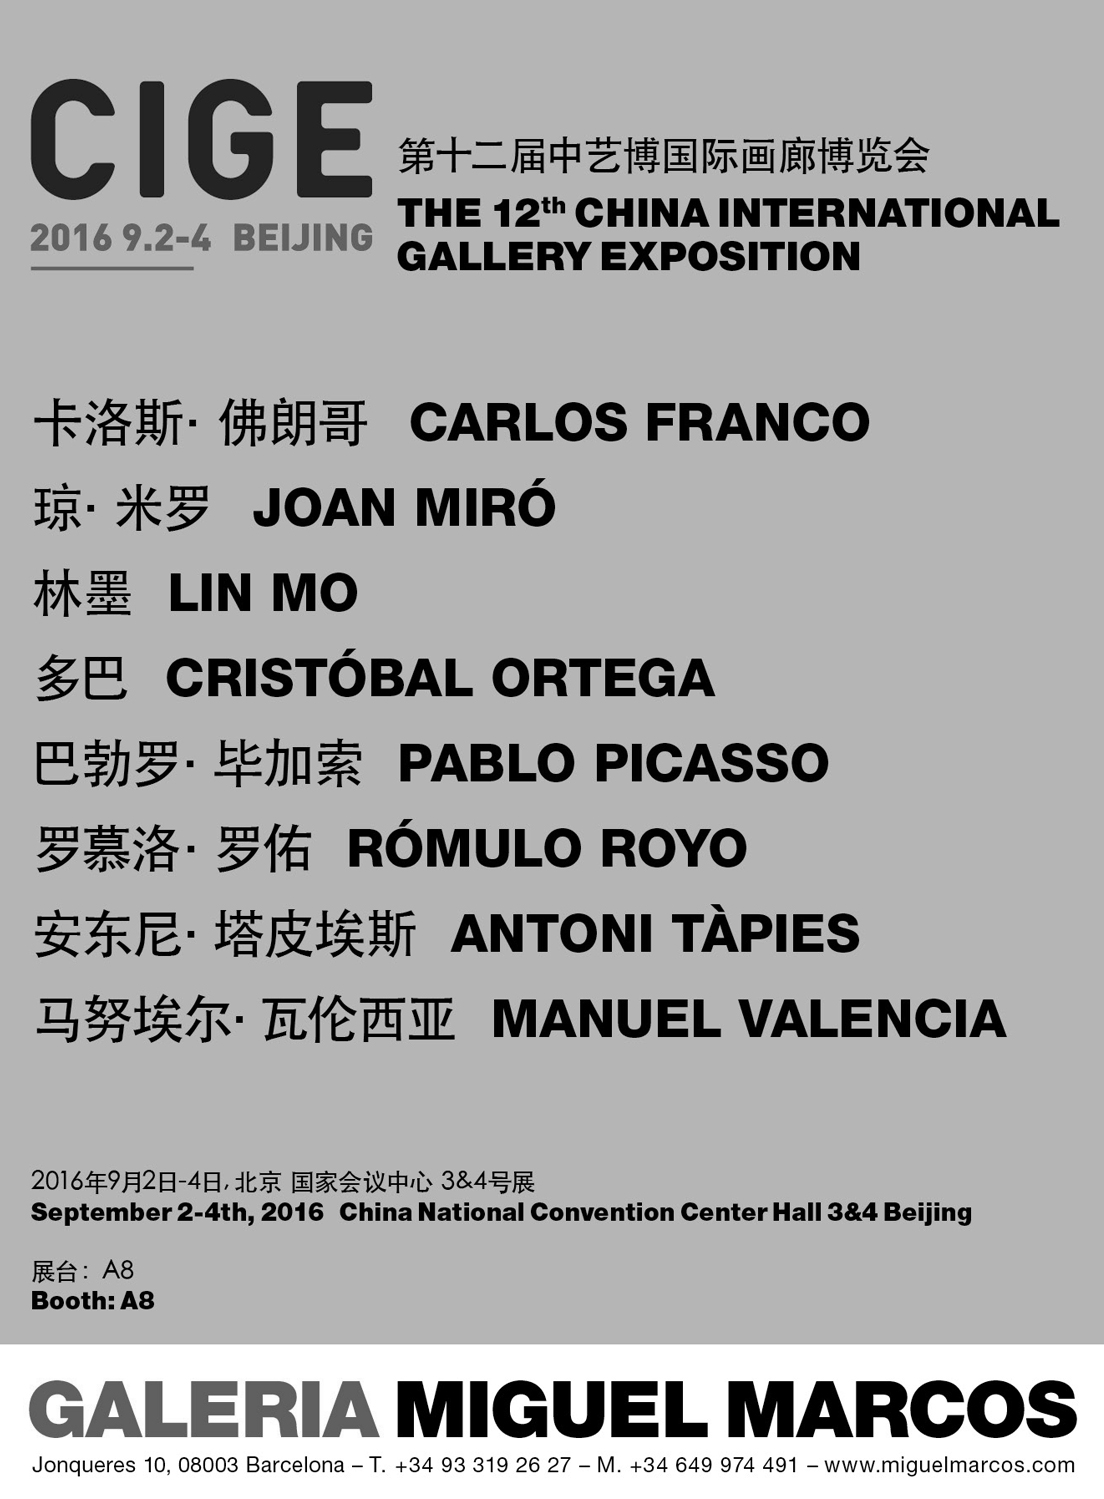 Beijin China International Gallery Exposition 2016 - Romulo Royo